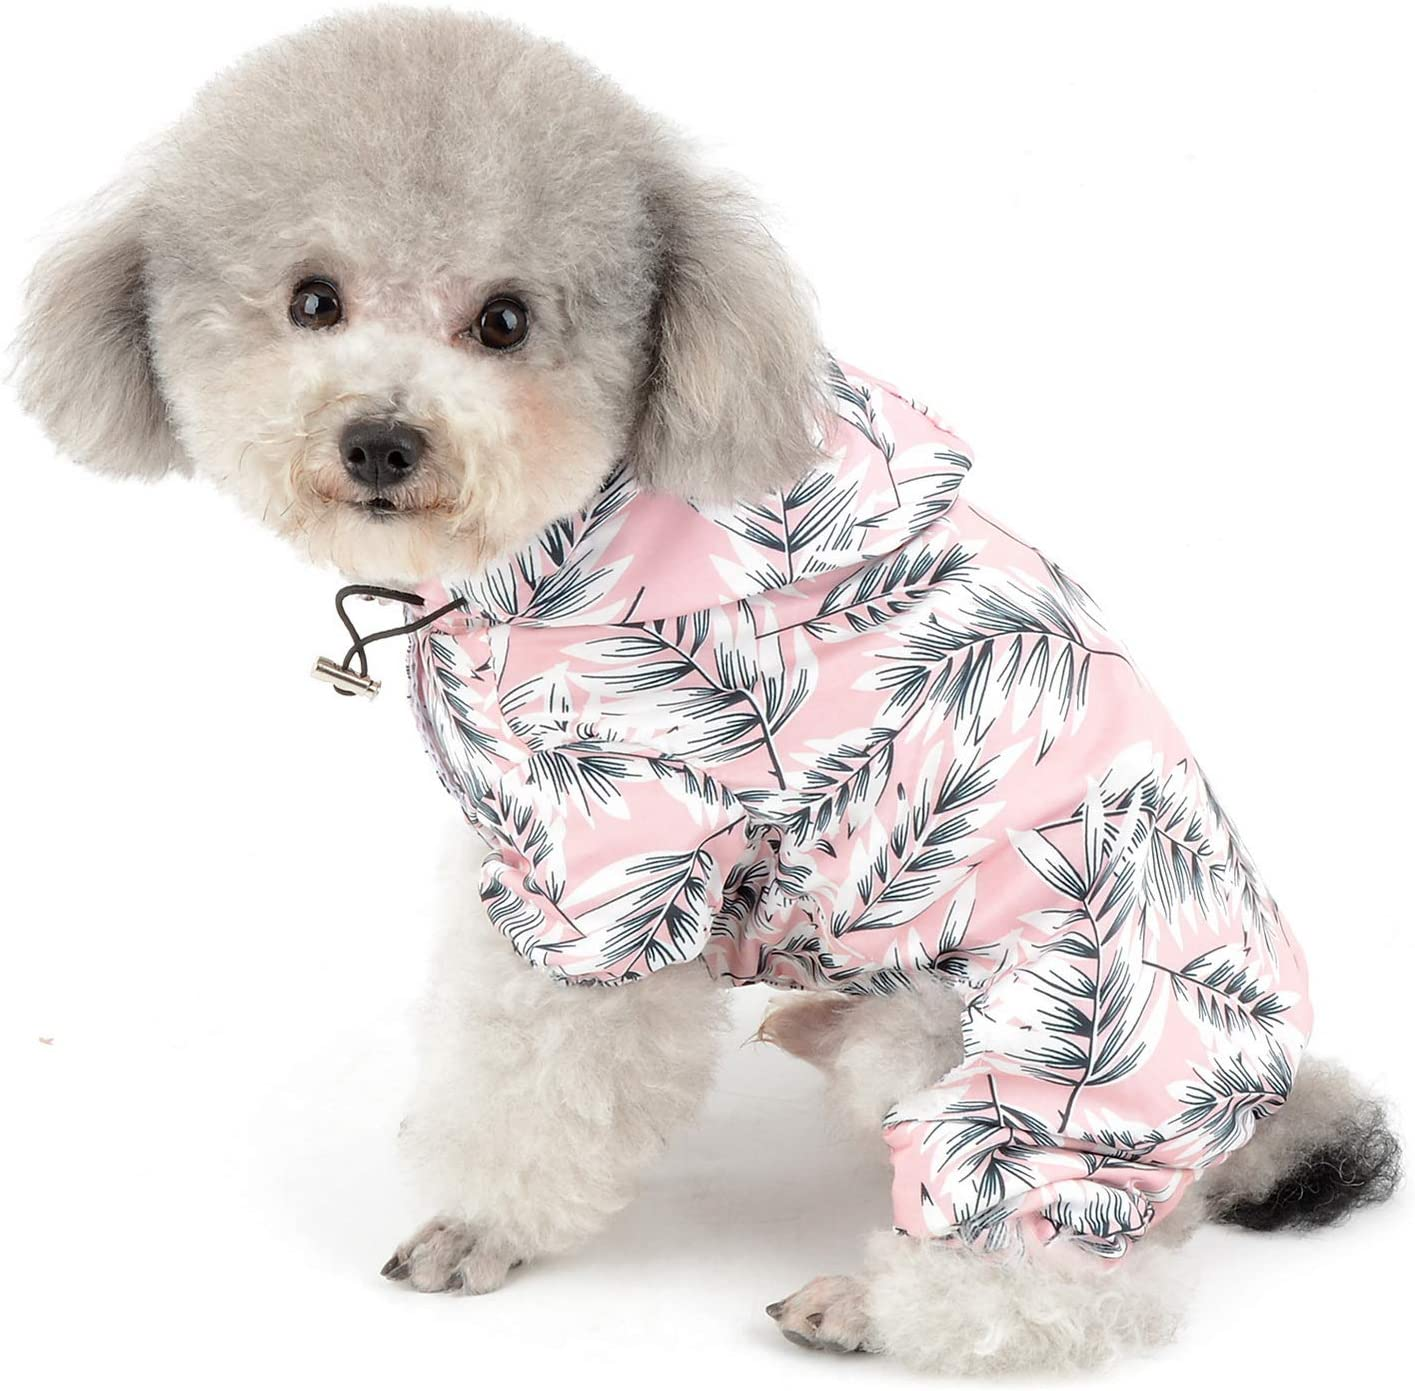 SMALLLEE/_LUCKY/_STORE Soft Floral Hooded Rain Coat for Small Dog Waterproof Rain Jacket Pet Sun Protection Clothing Toy Breed Dog Rain Gear,Small,Blue